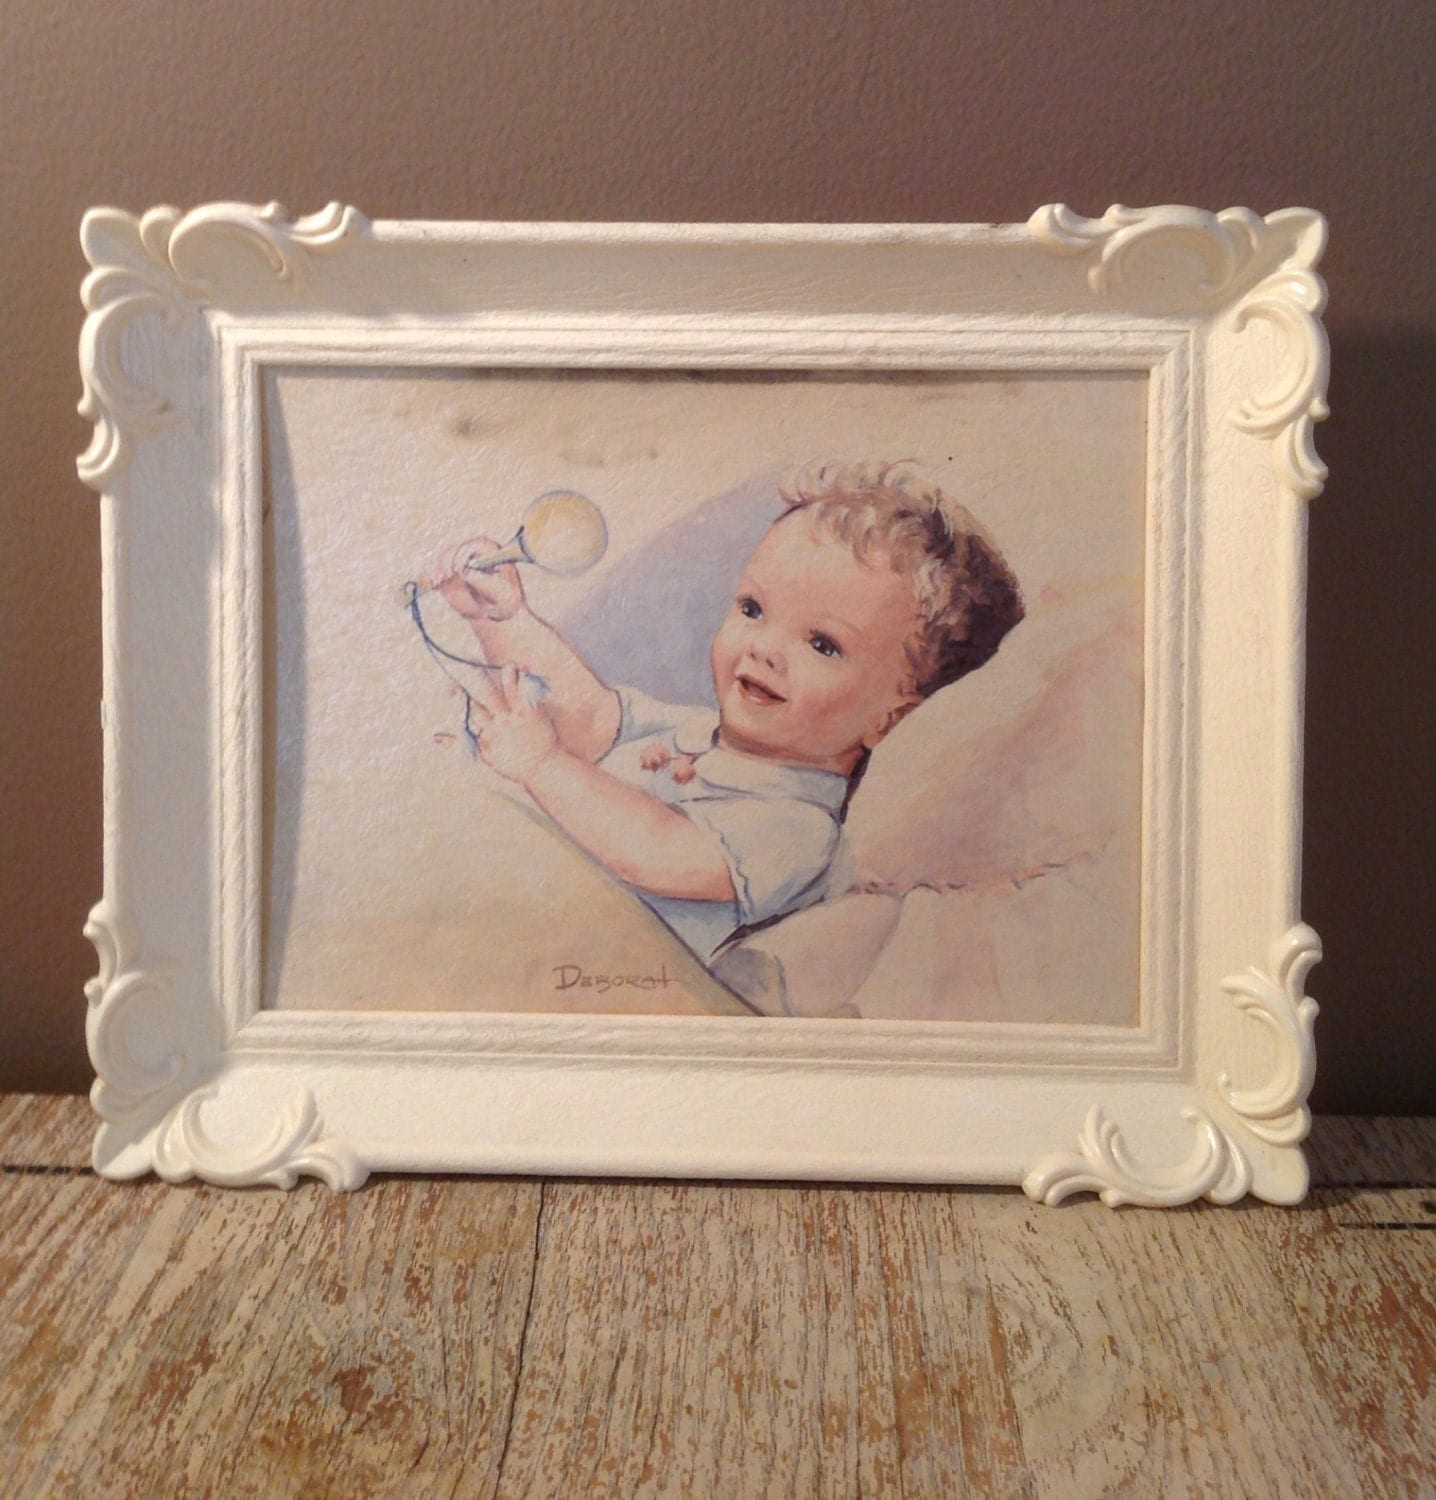 Vintage Baby Boy Wall Art - Nursery Decor - Framed Retro Baby Painting - PackandAlleys